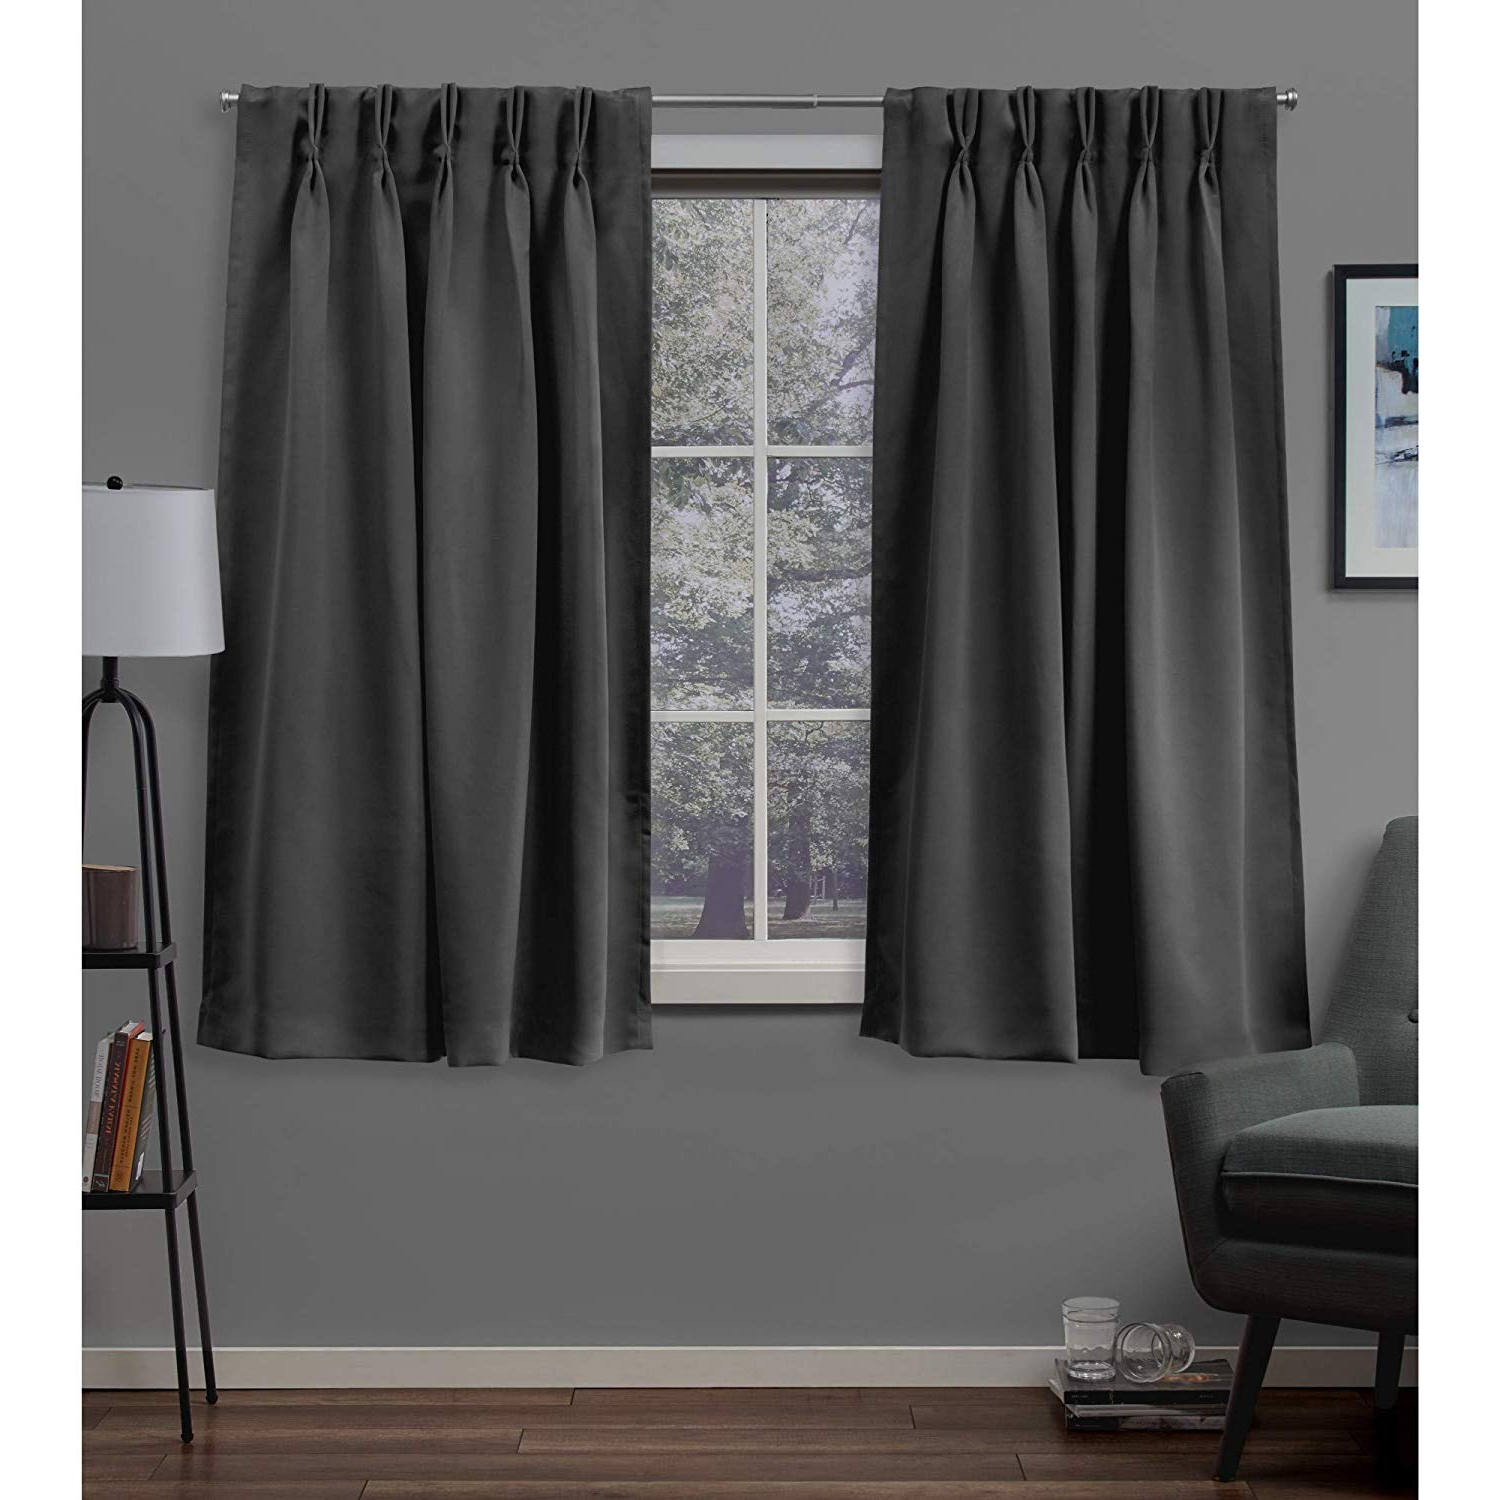 Double Pinch Pleat Top Curtain Panel Pairs With Regard To Well Liked Exclusive Home Sateen Twill Woven Blackout Pinch Pleat Curtain Panel Pair,  Charcoal (View 10 of 20)